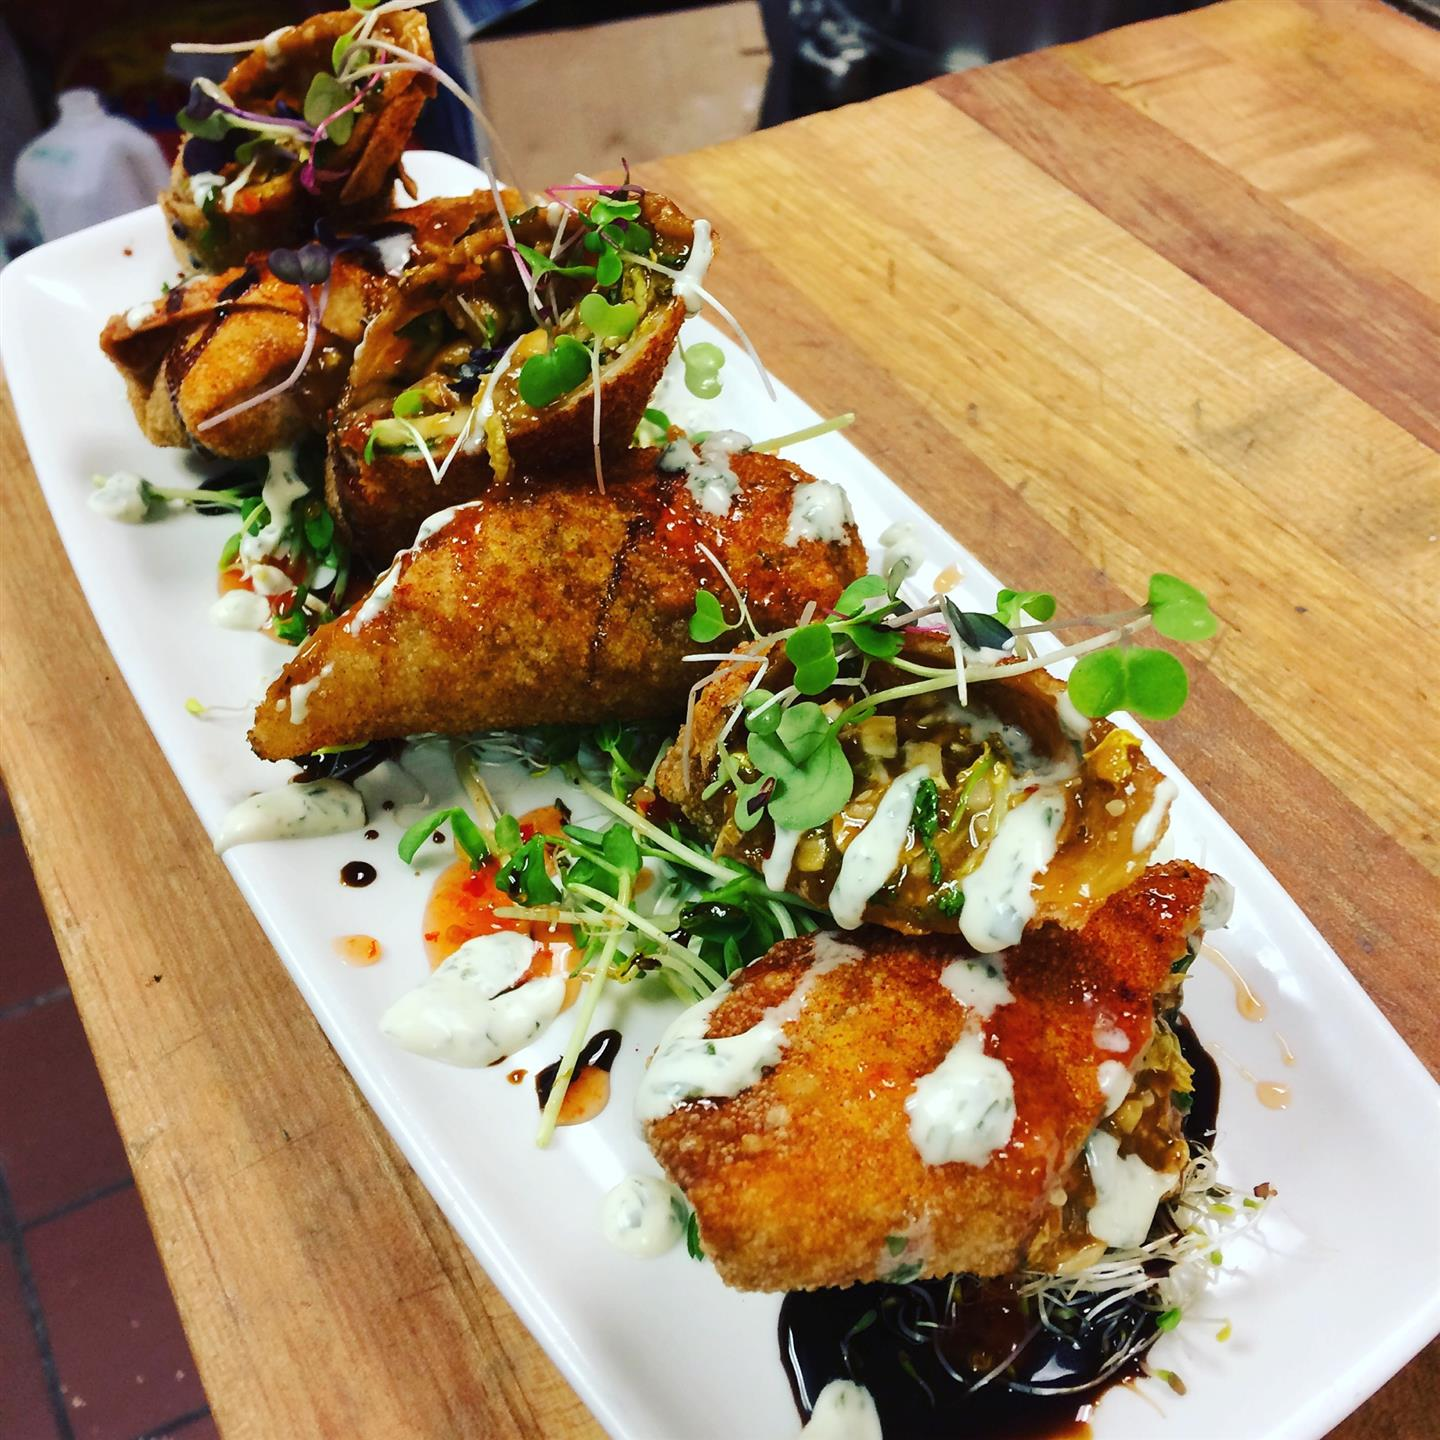 Egg rolls topped with garnish and sauce drizzled on top of a plate